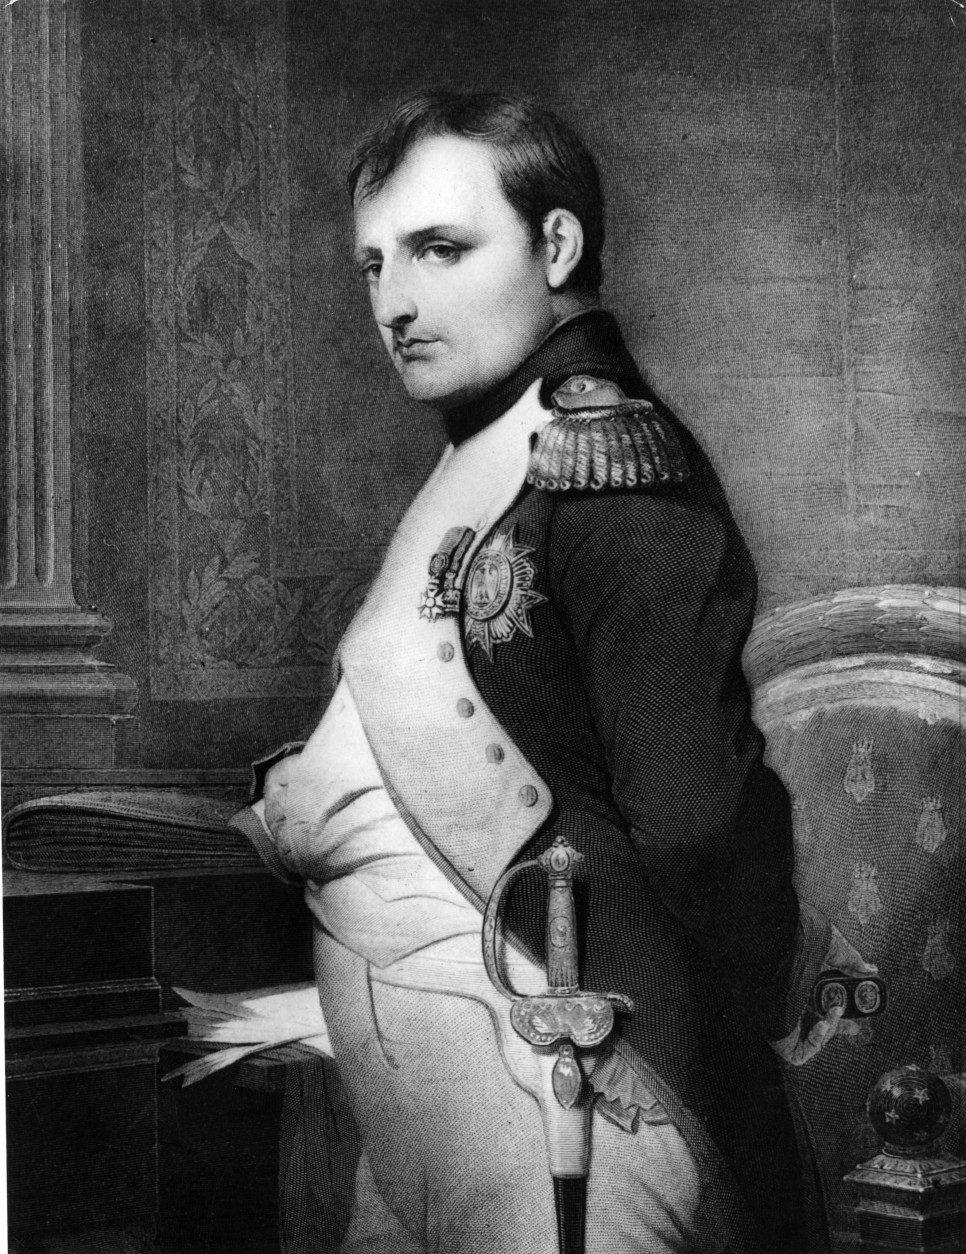 circa 1810:  Emperor Napoleon Bonaparte (1769 - 1821) in military uniform.  Original Publication: From a painting by Delaroche.  (Photo by Hulton Archive/Getty Images)